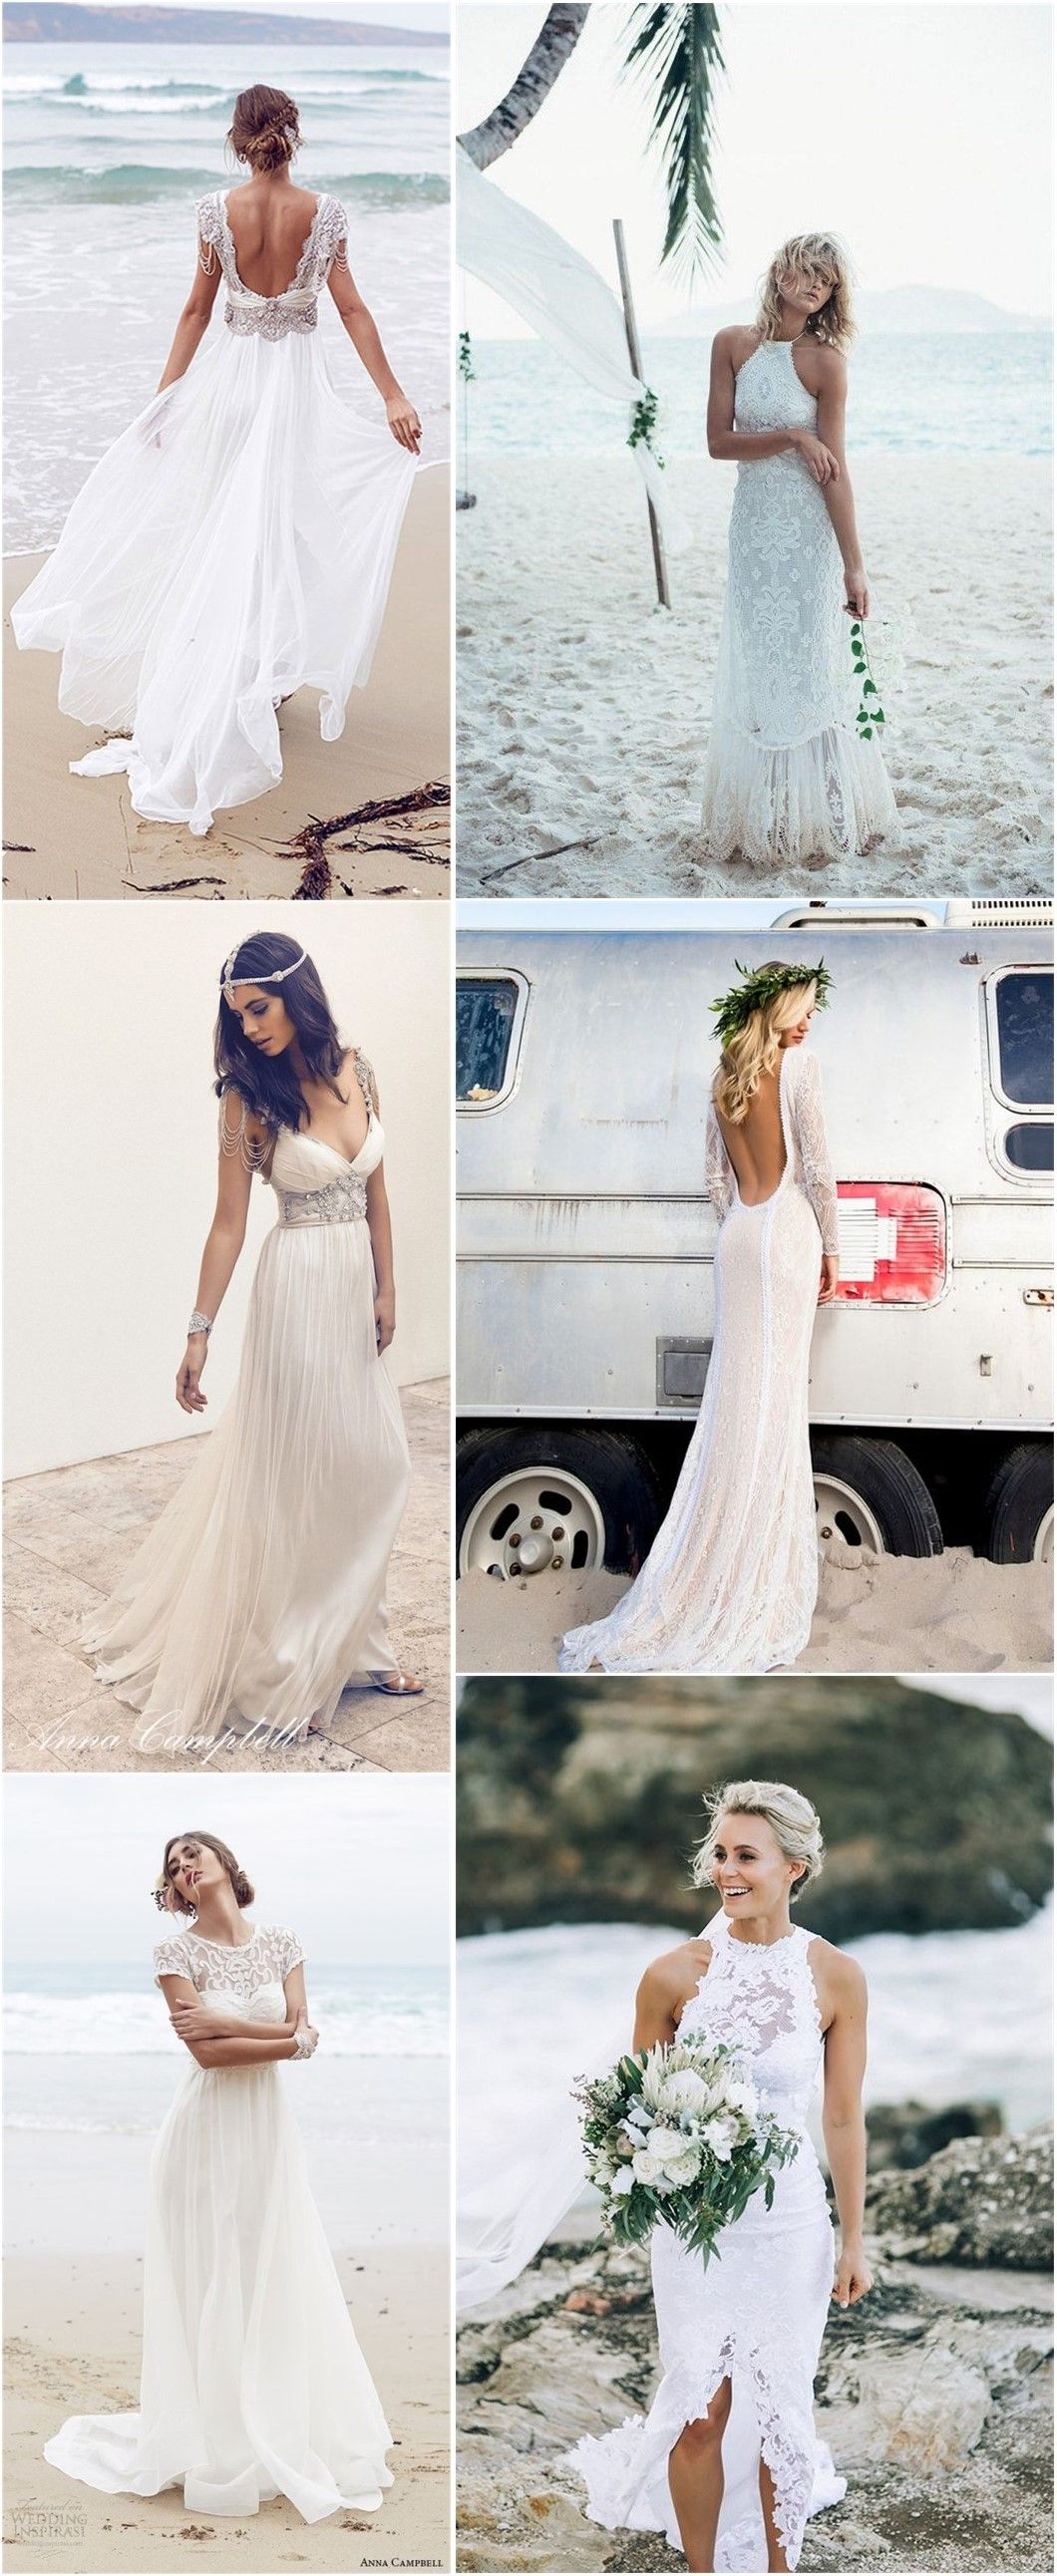 Top beach wedding dresses ideas to stand you out